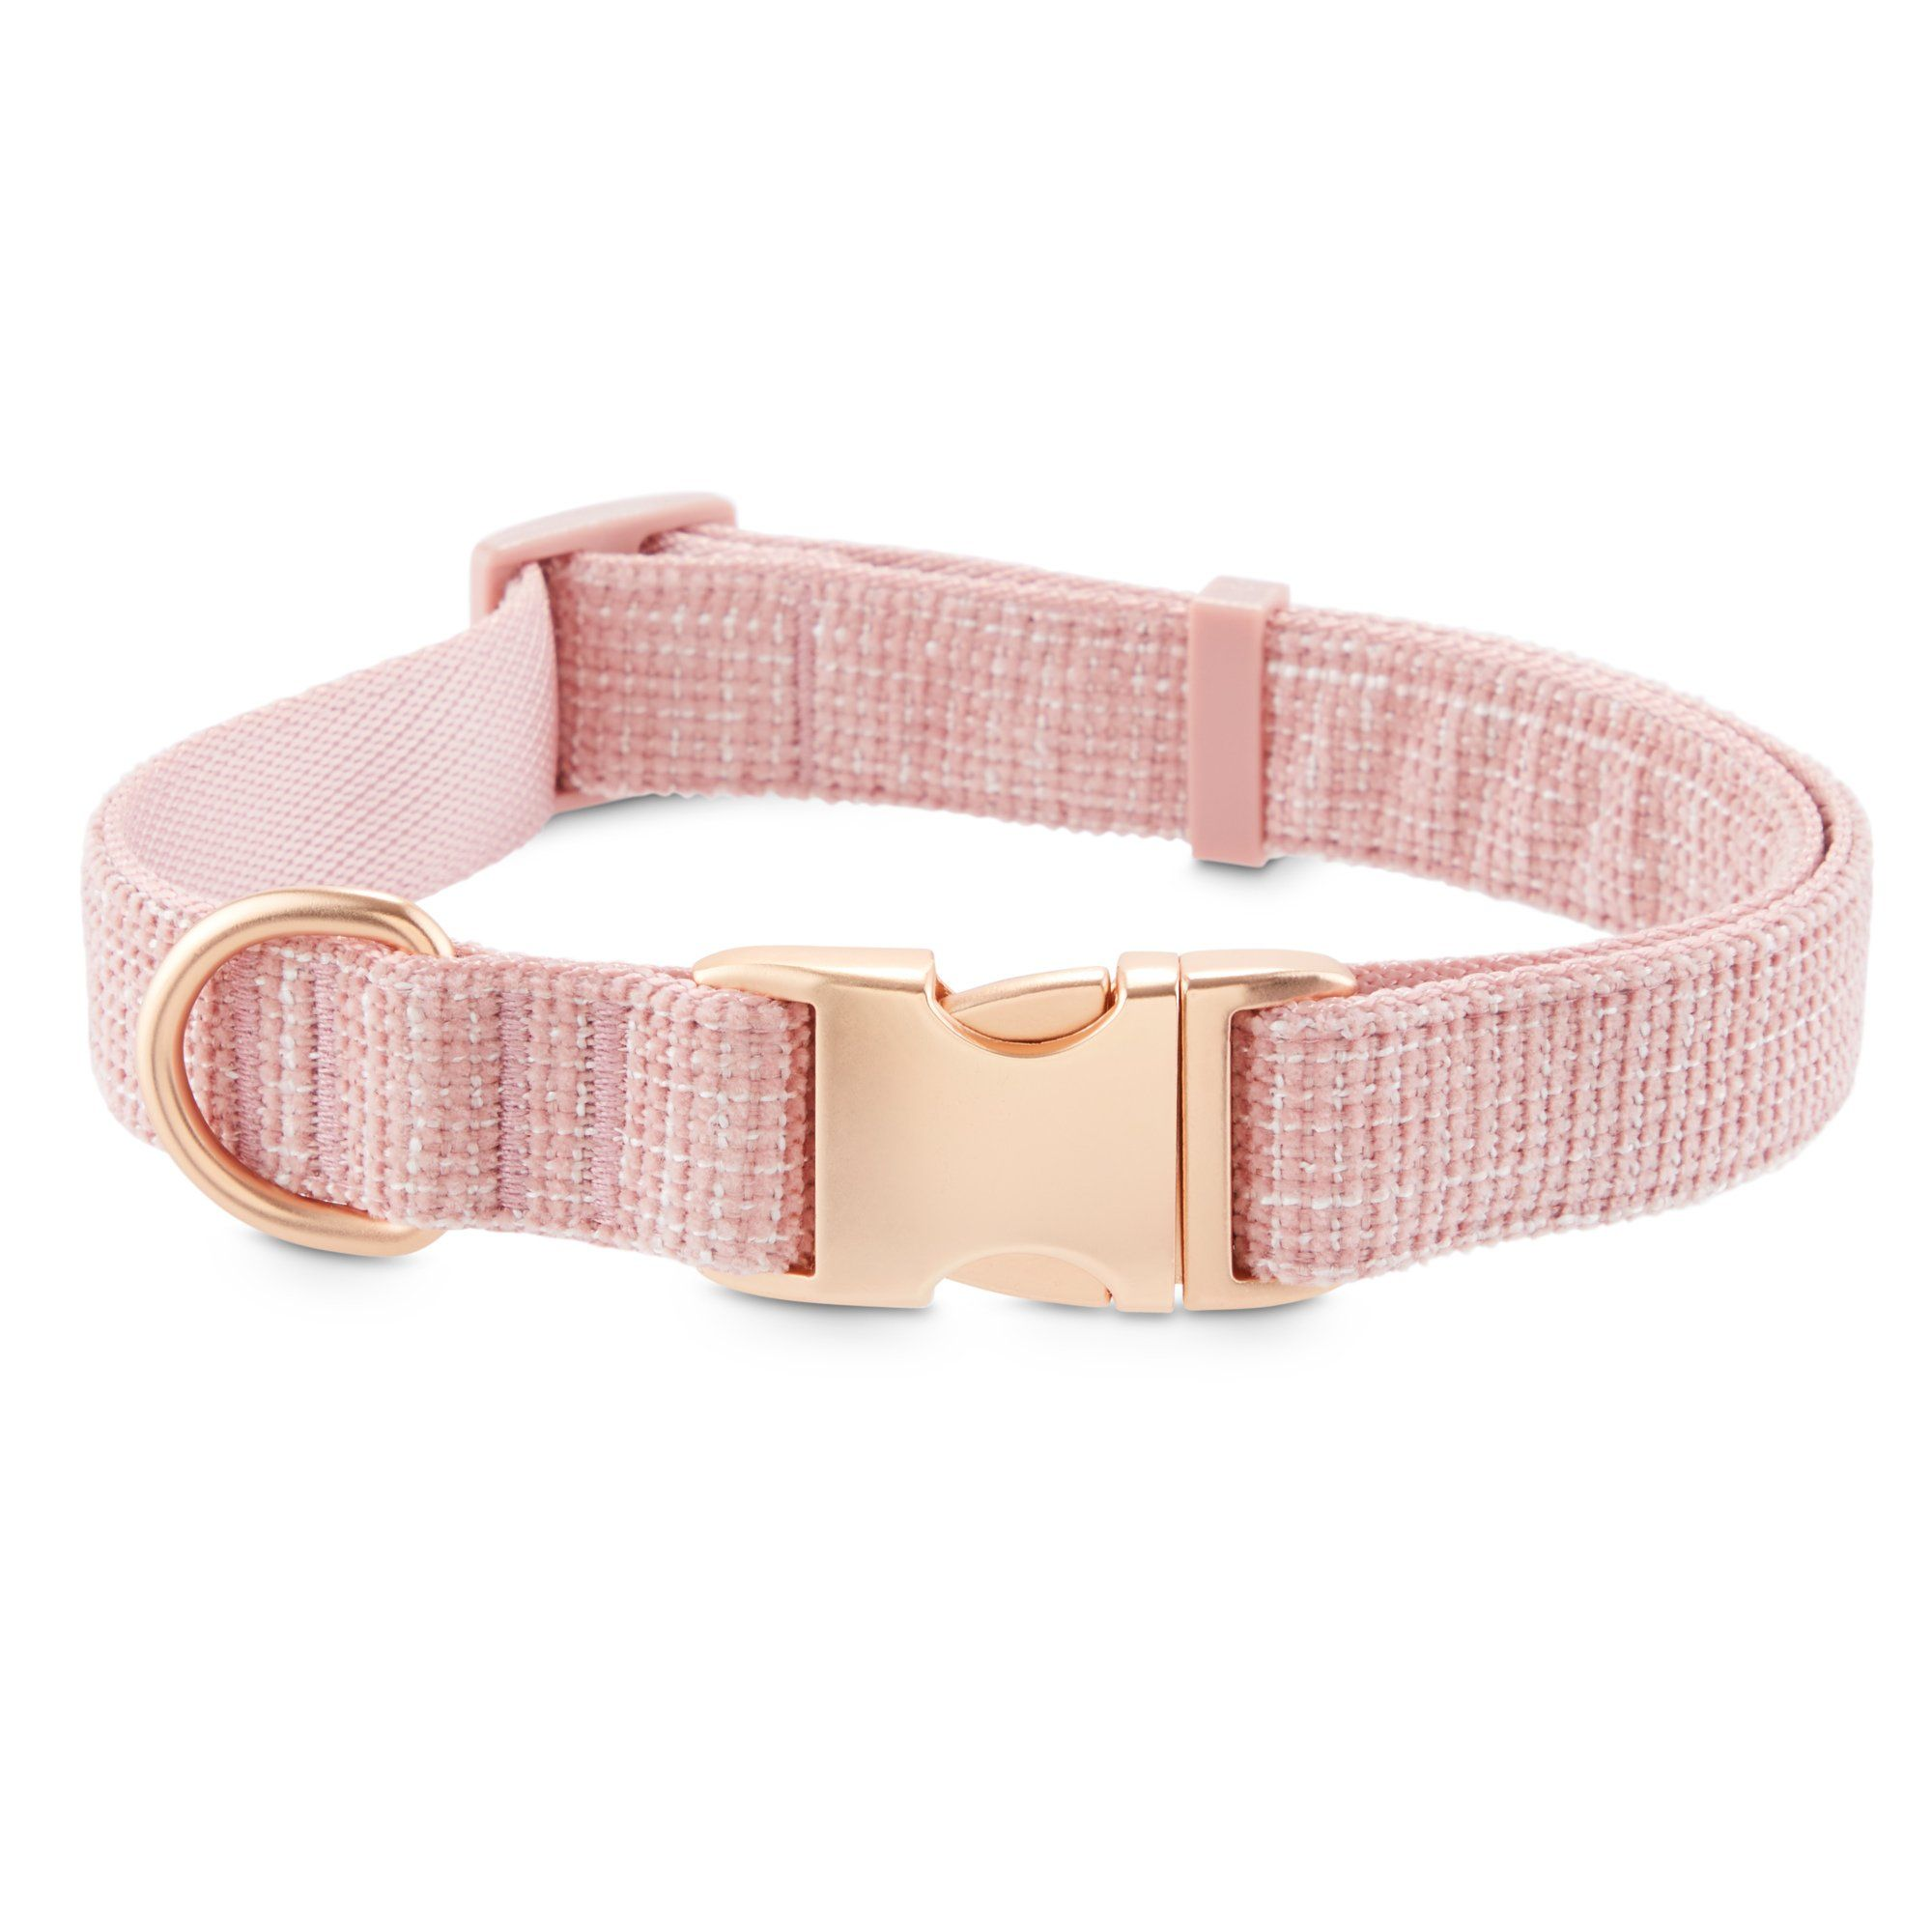 Modern Luxe Collection Pink Tweed Dog Collar Large X Large Cute